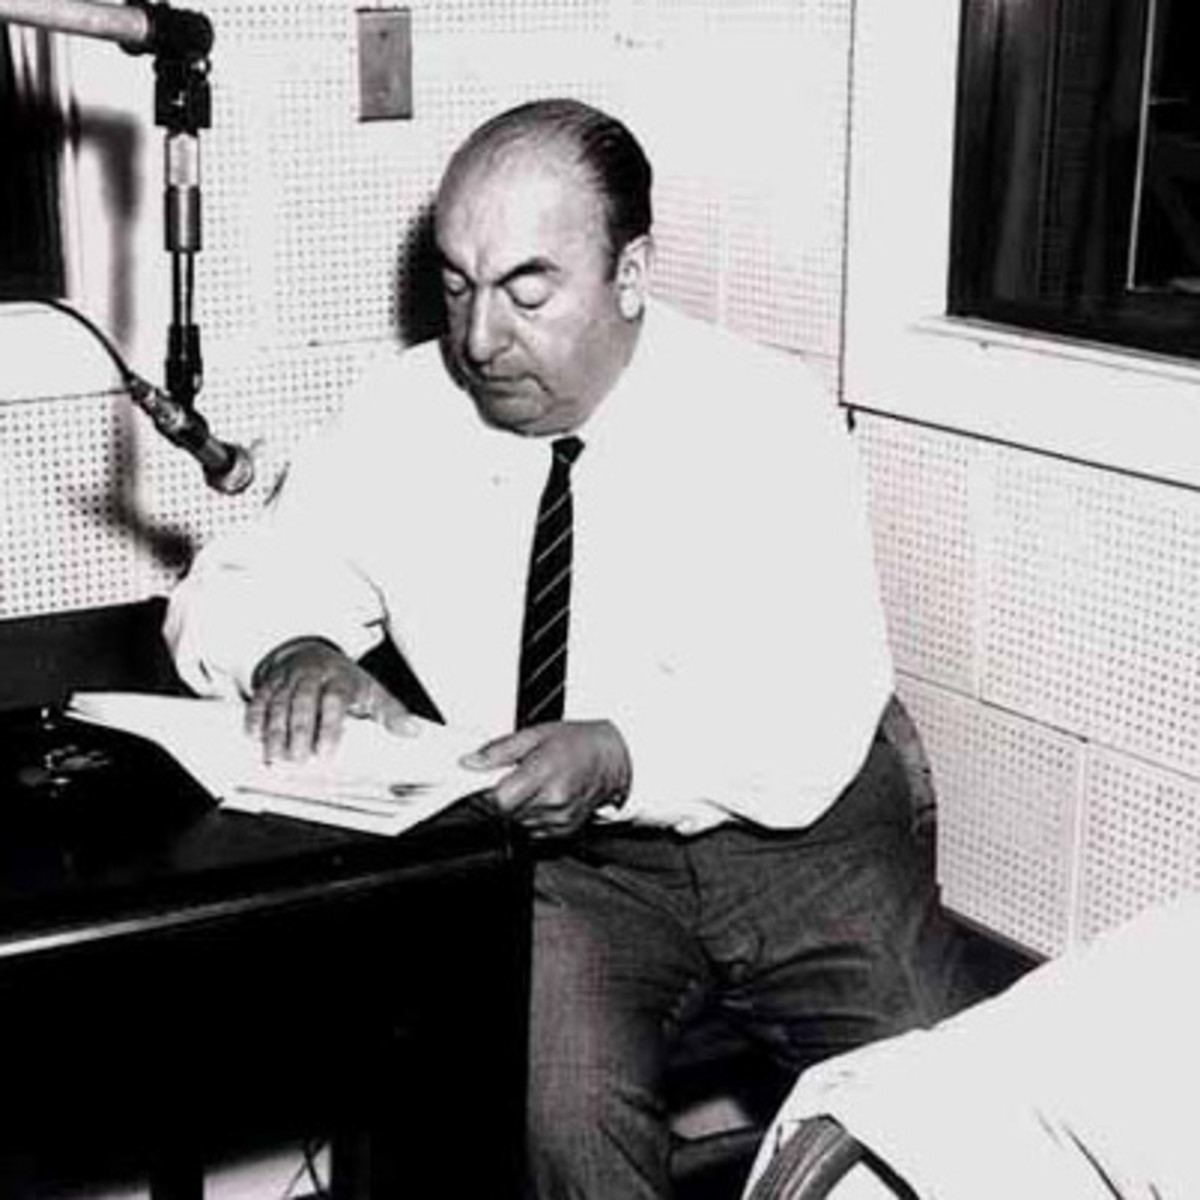 poets obligation by pablo neruda Essays - largest database of quality sample essays and research papers on poets obligation by pablo neruda.